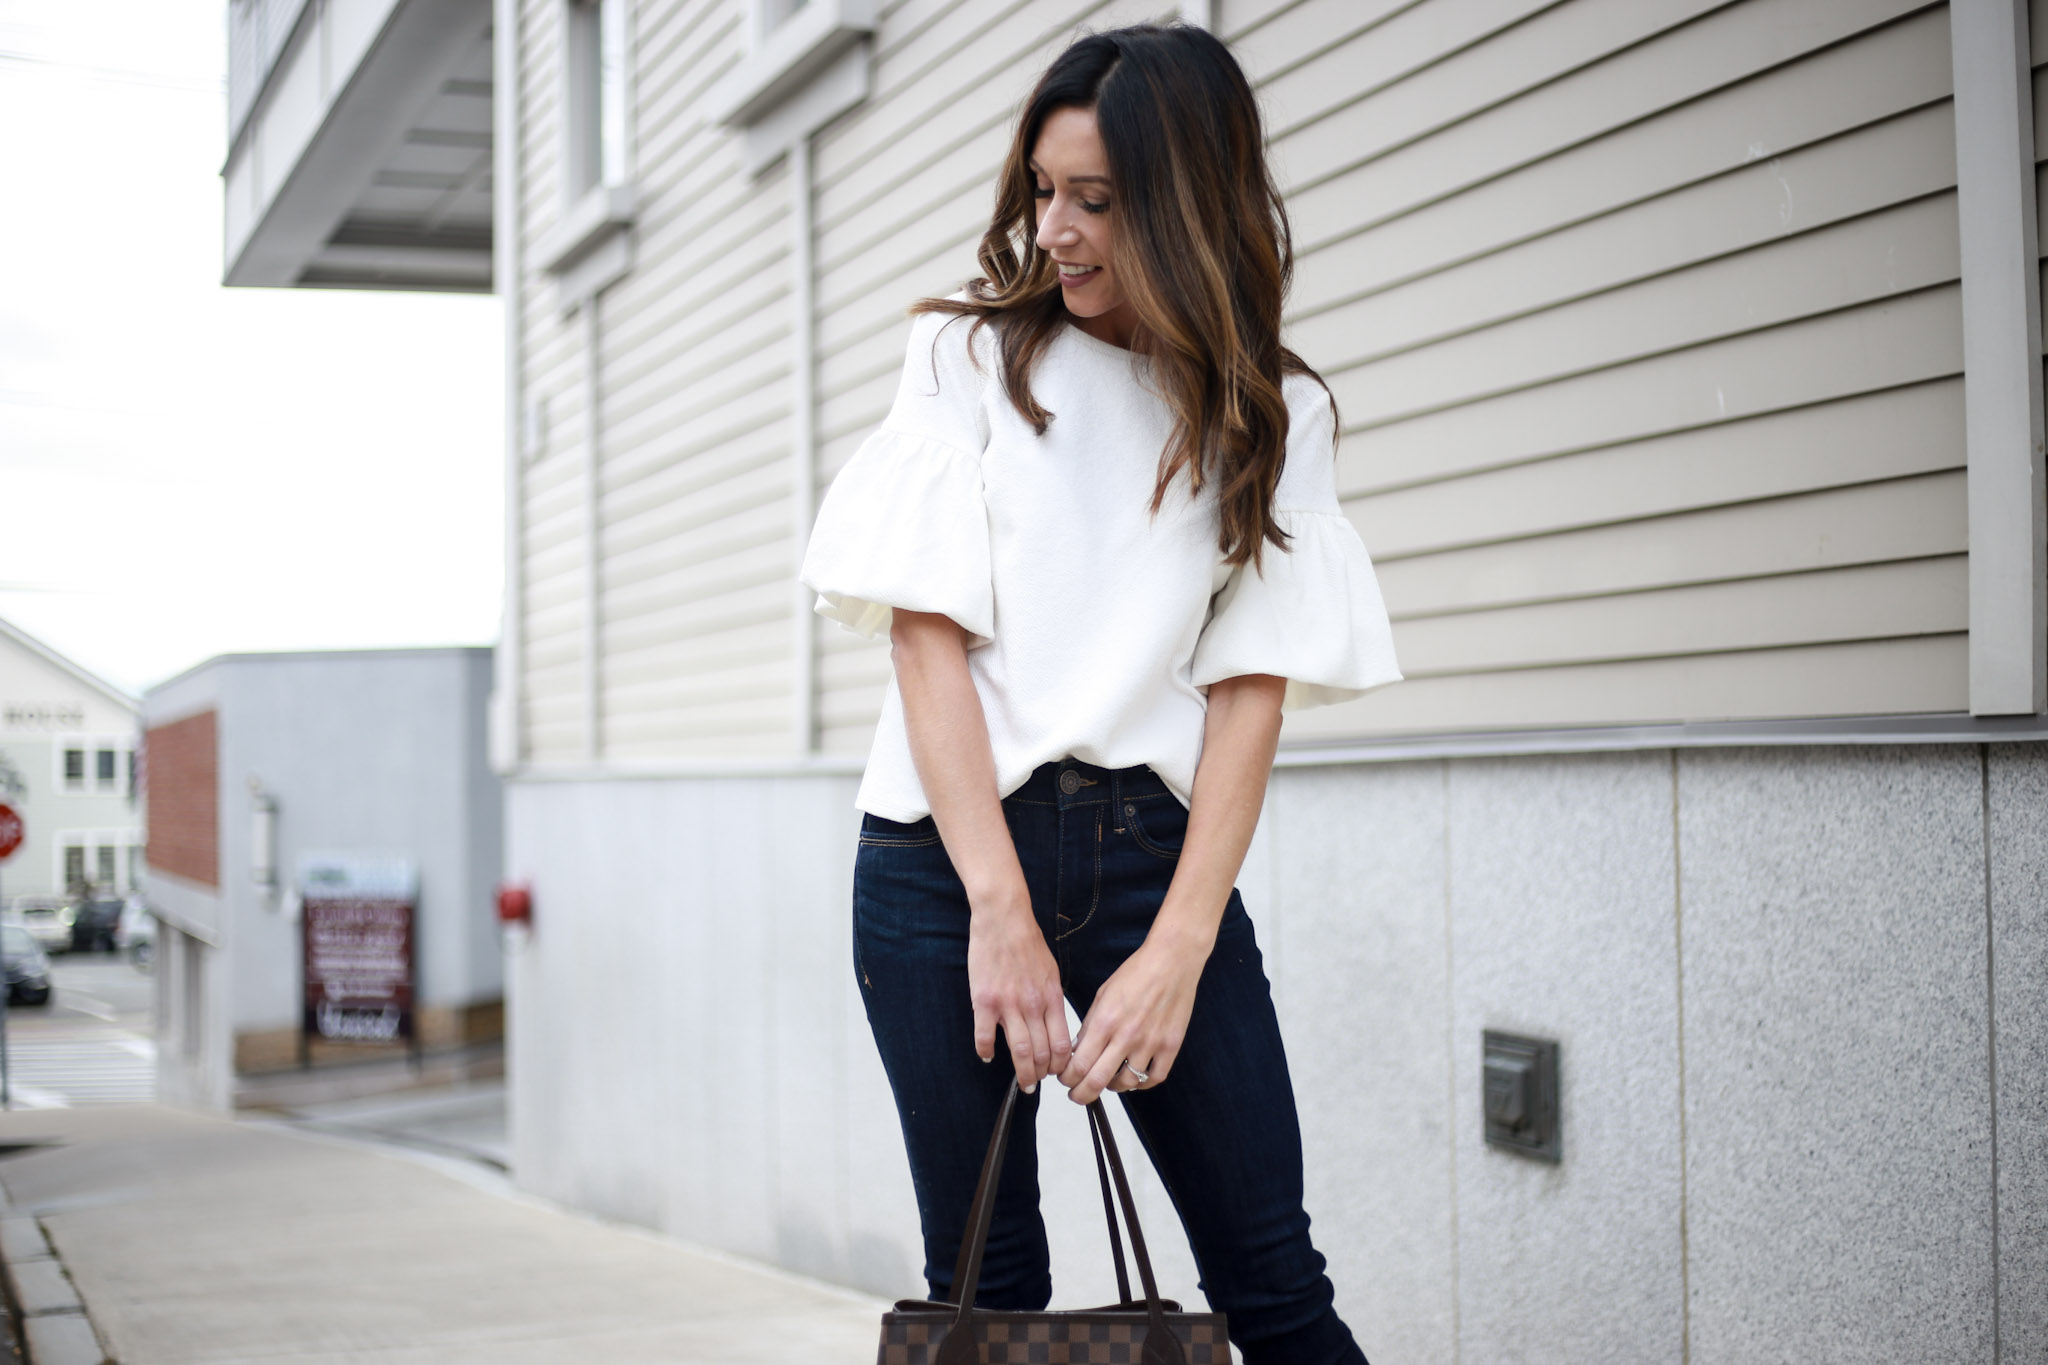 My most item from my capsule wardrobe - Capsule Wardrobe Series - Skinny Jeans by Boston fashion blogger Living Life Pretty